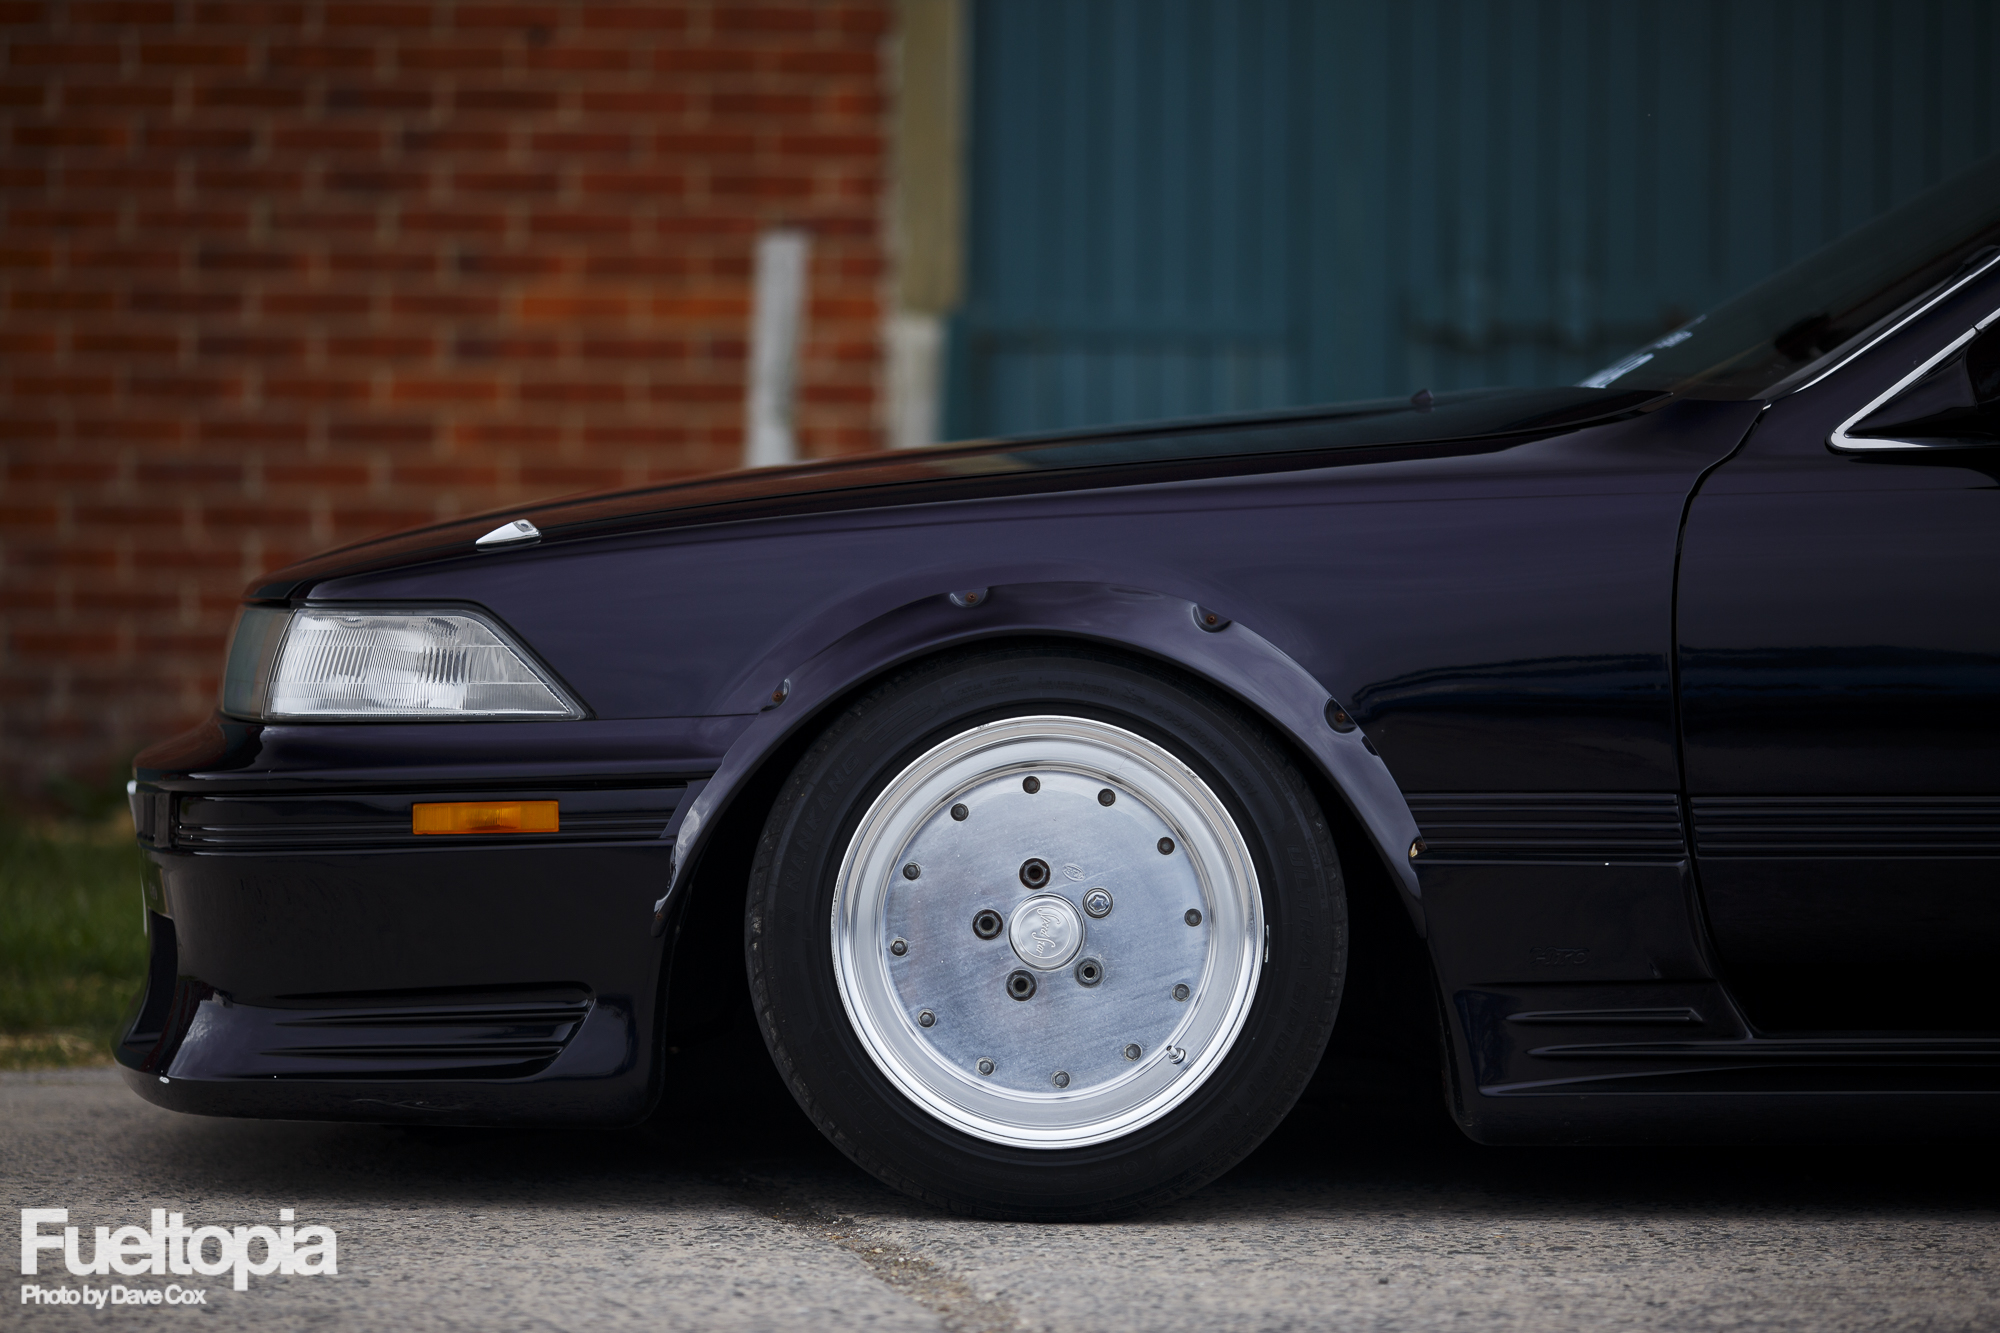 twin-turbo Archives - fueltopia